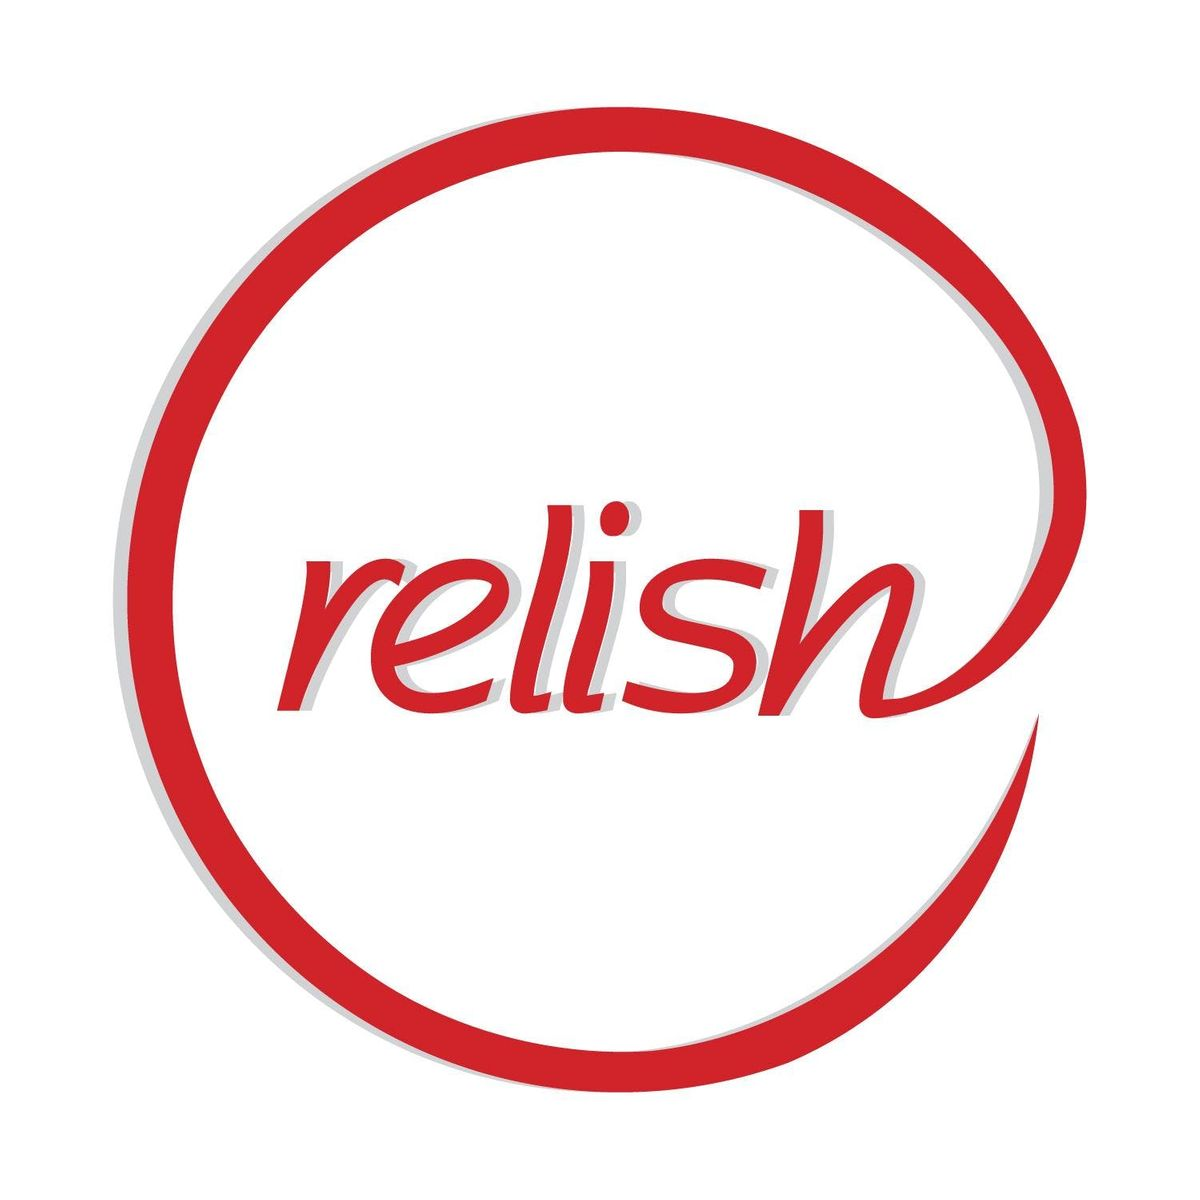 Relish Speed Dating  Singles Night Event in Calgary  Who Do You Relish